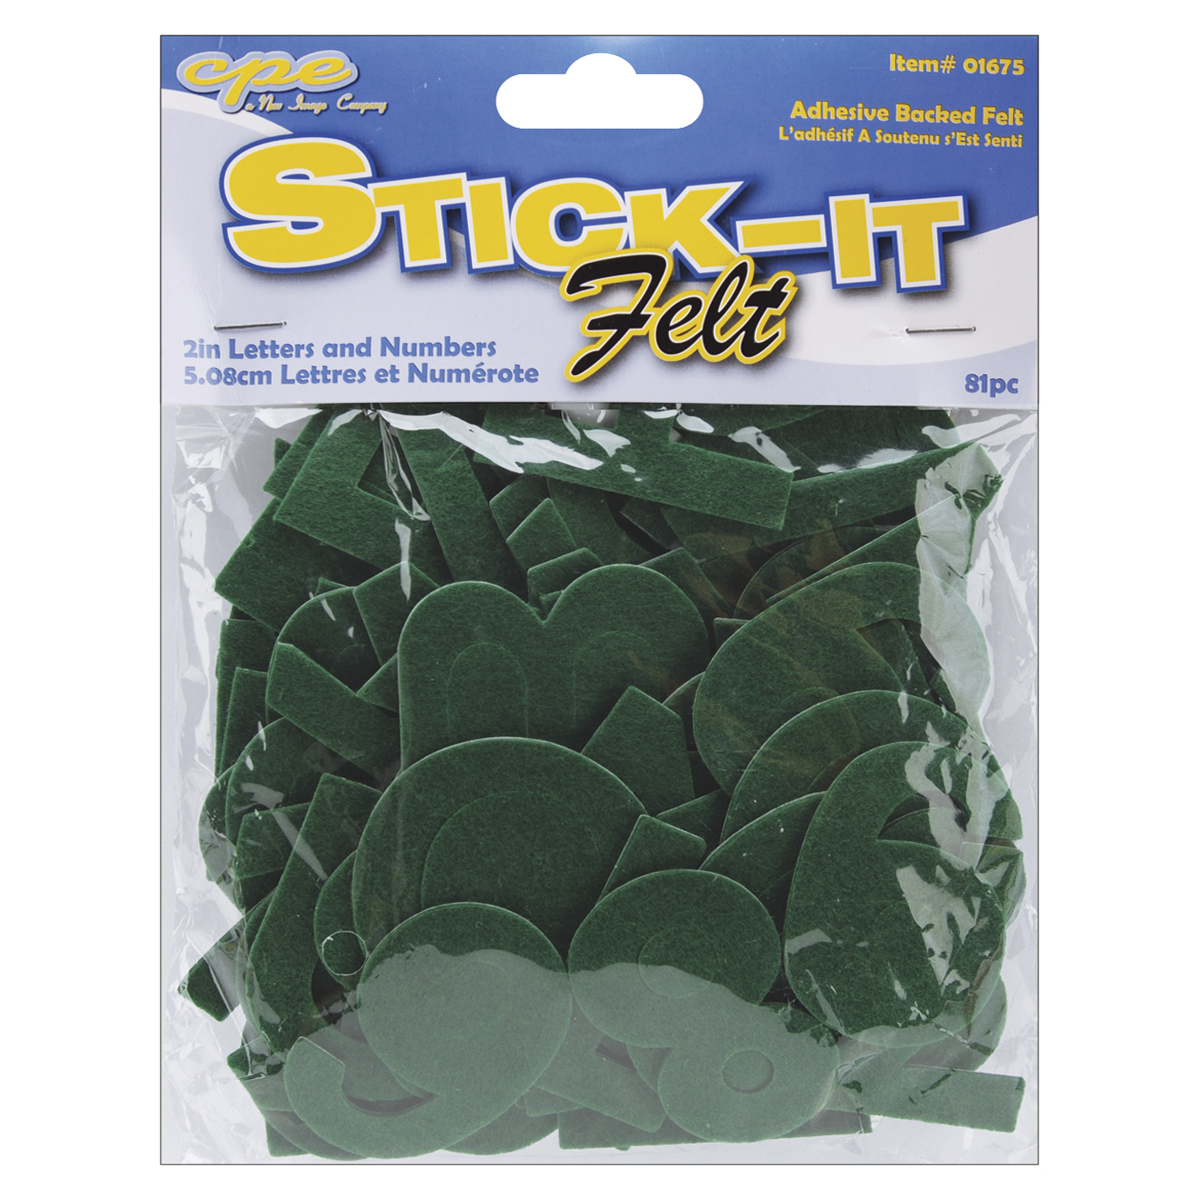 New Image Group Stick It Felt Black 80-Pack 2-Inch Numbers and Letters